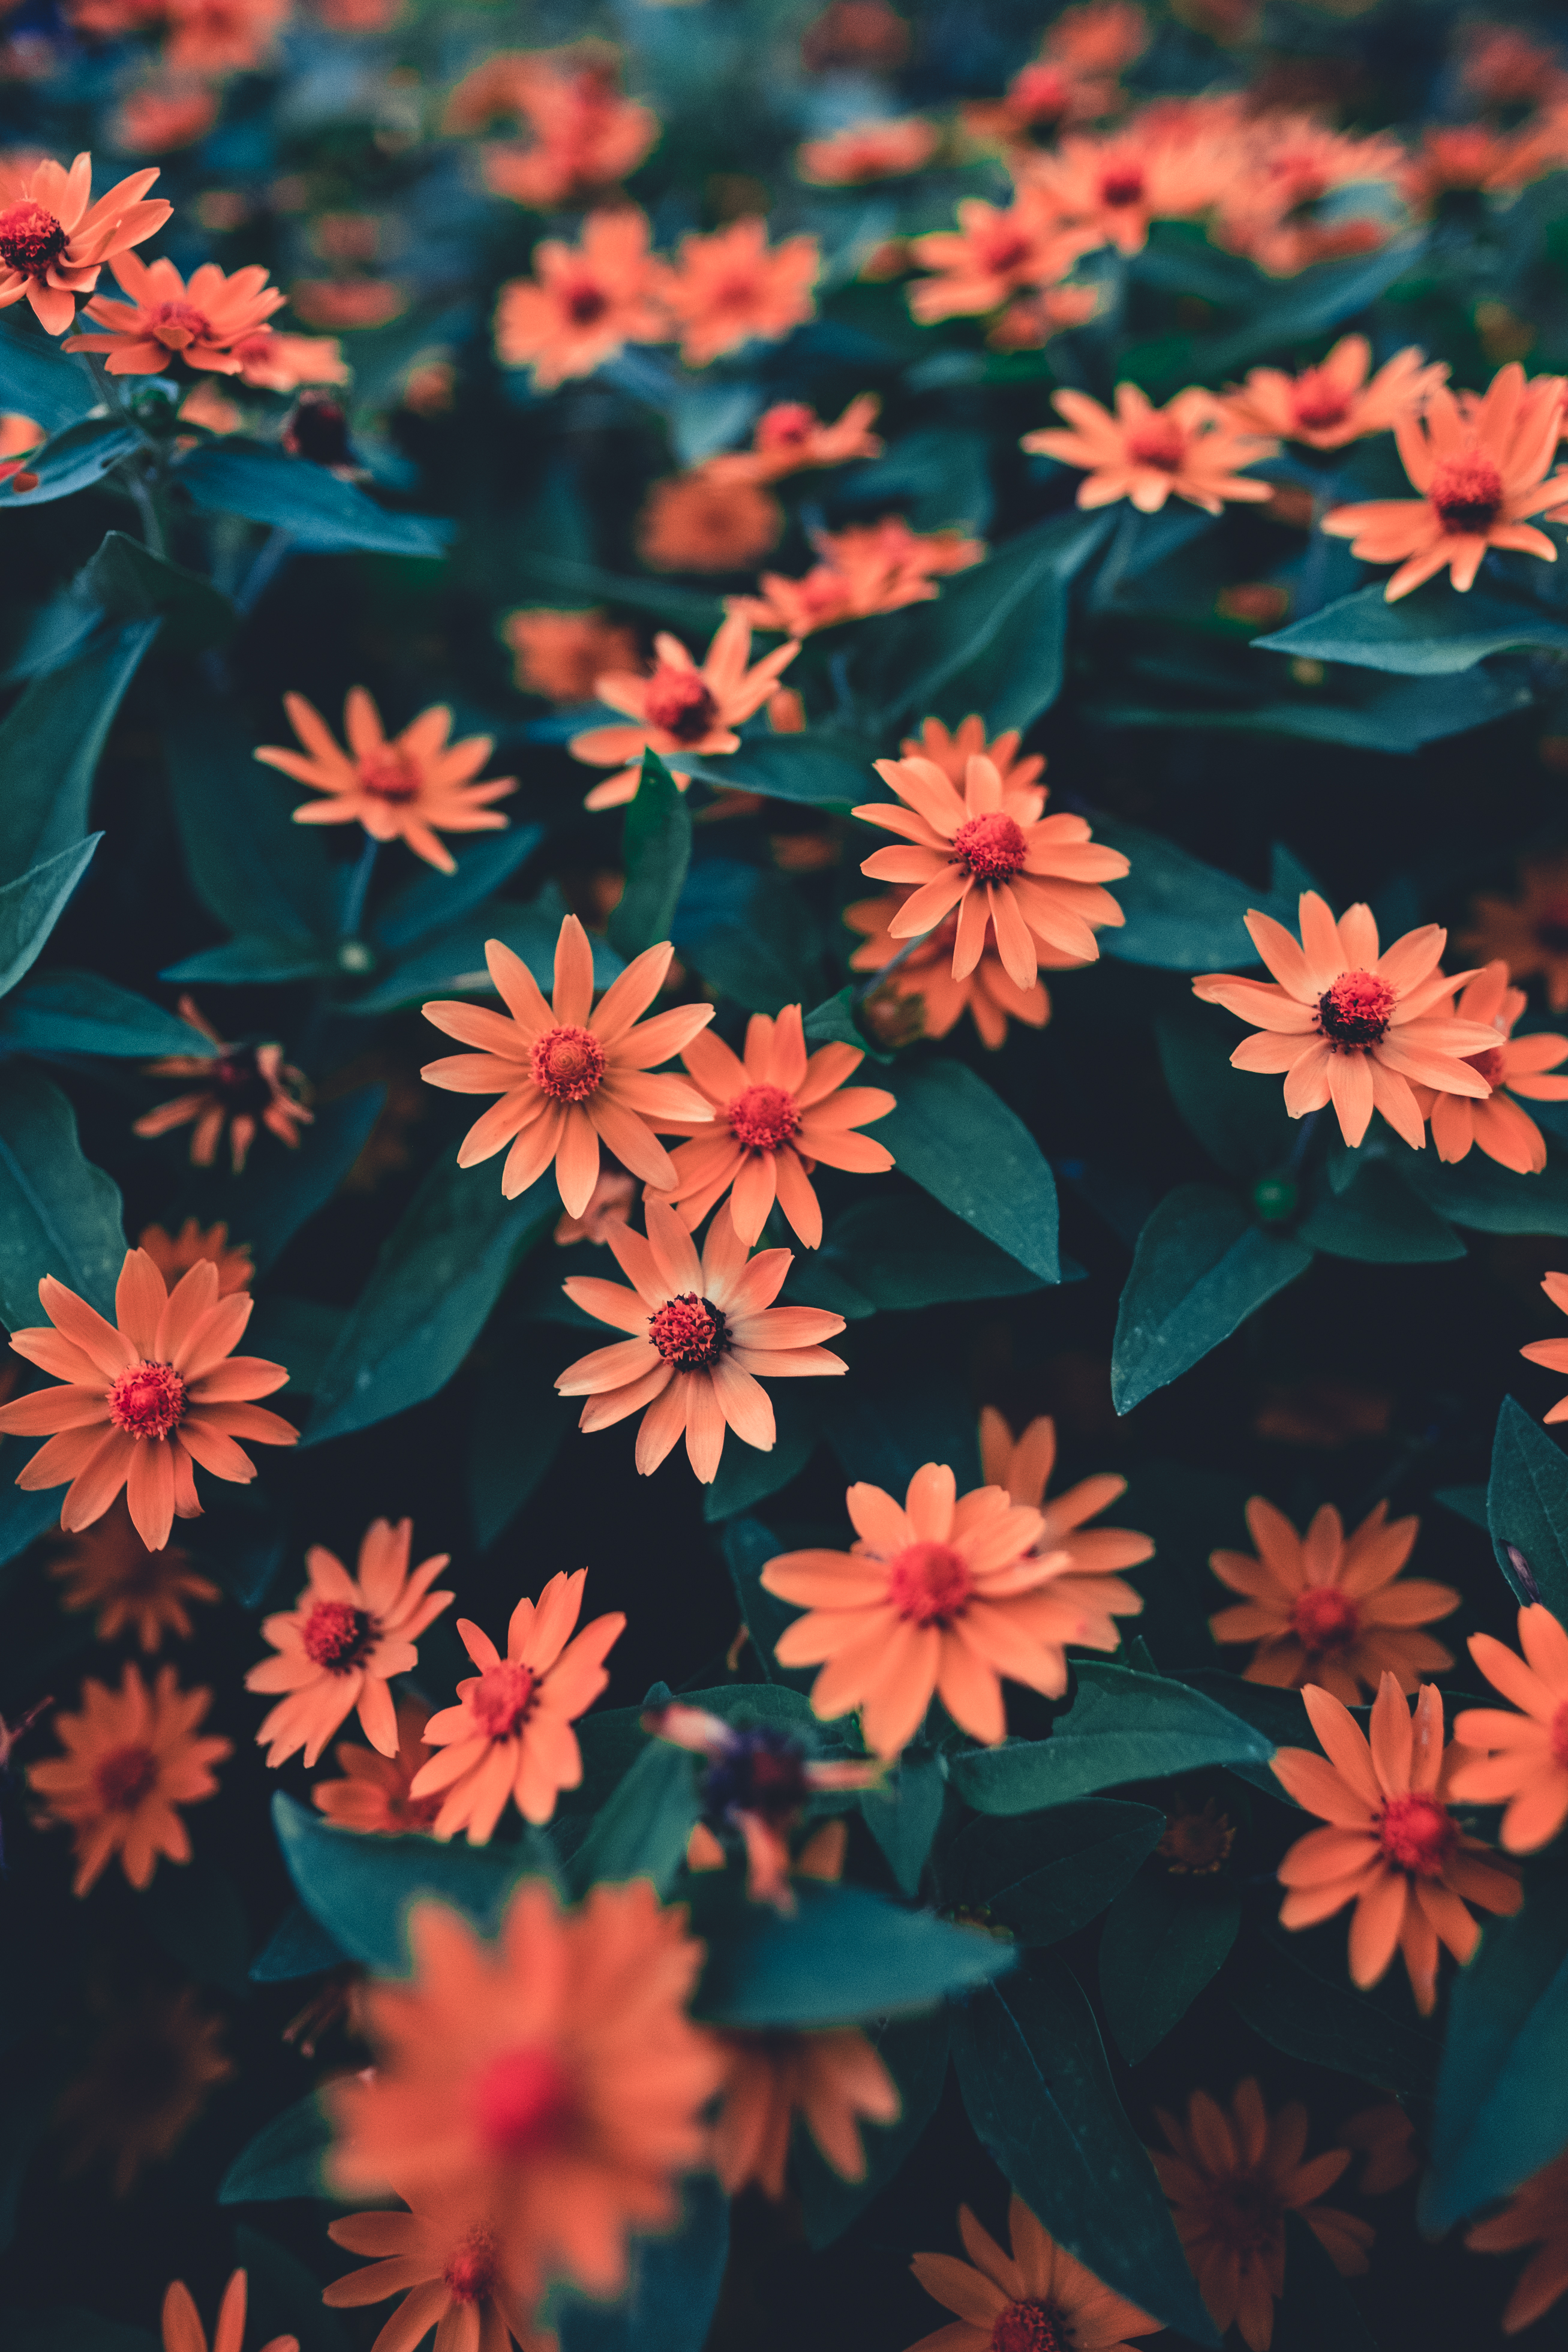 121685 Screensavers and Wallpapers Flower Bed for phone. Download Flowers, Leaves, Petals, Blur, Smooth, Bloom, Flowering, Flower Bed, Flowerbed, Buds pictures for free